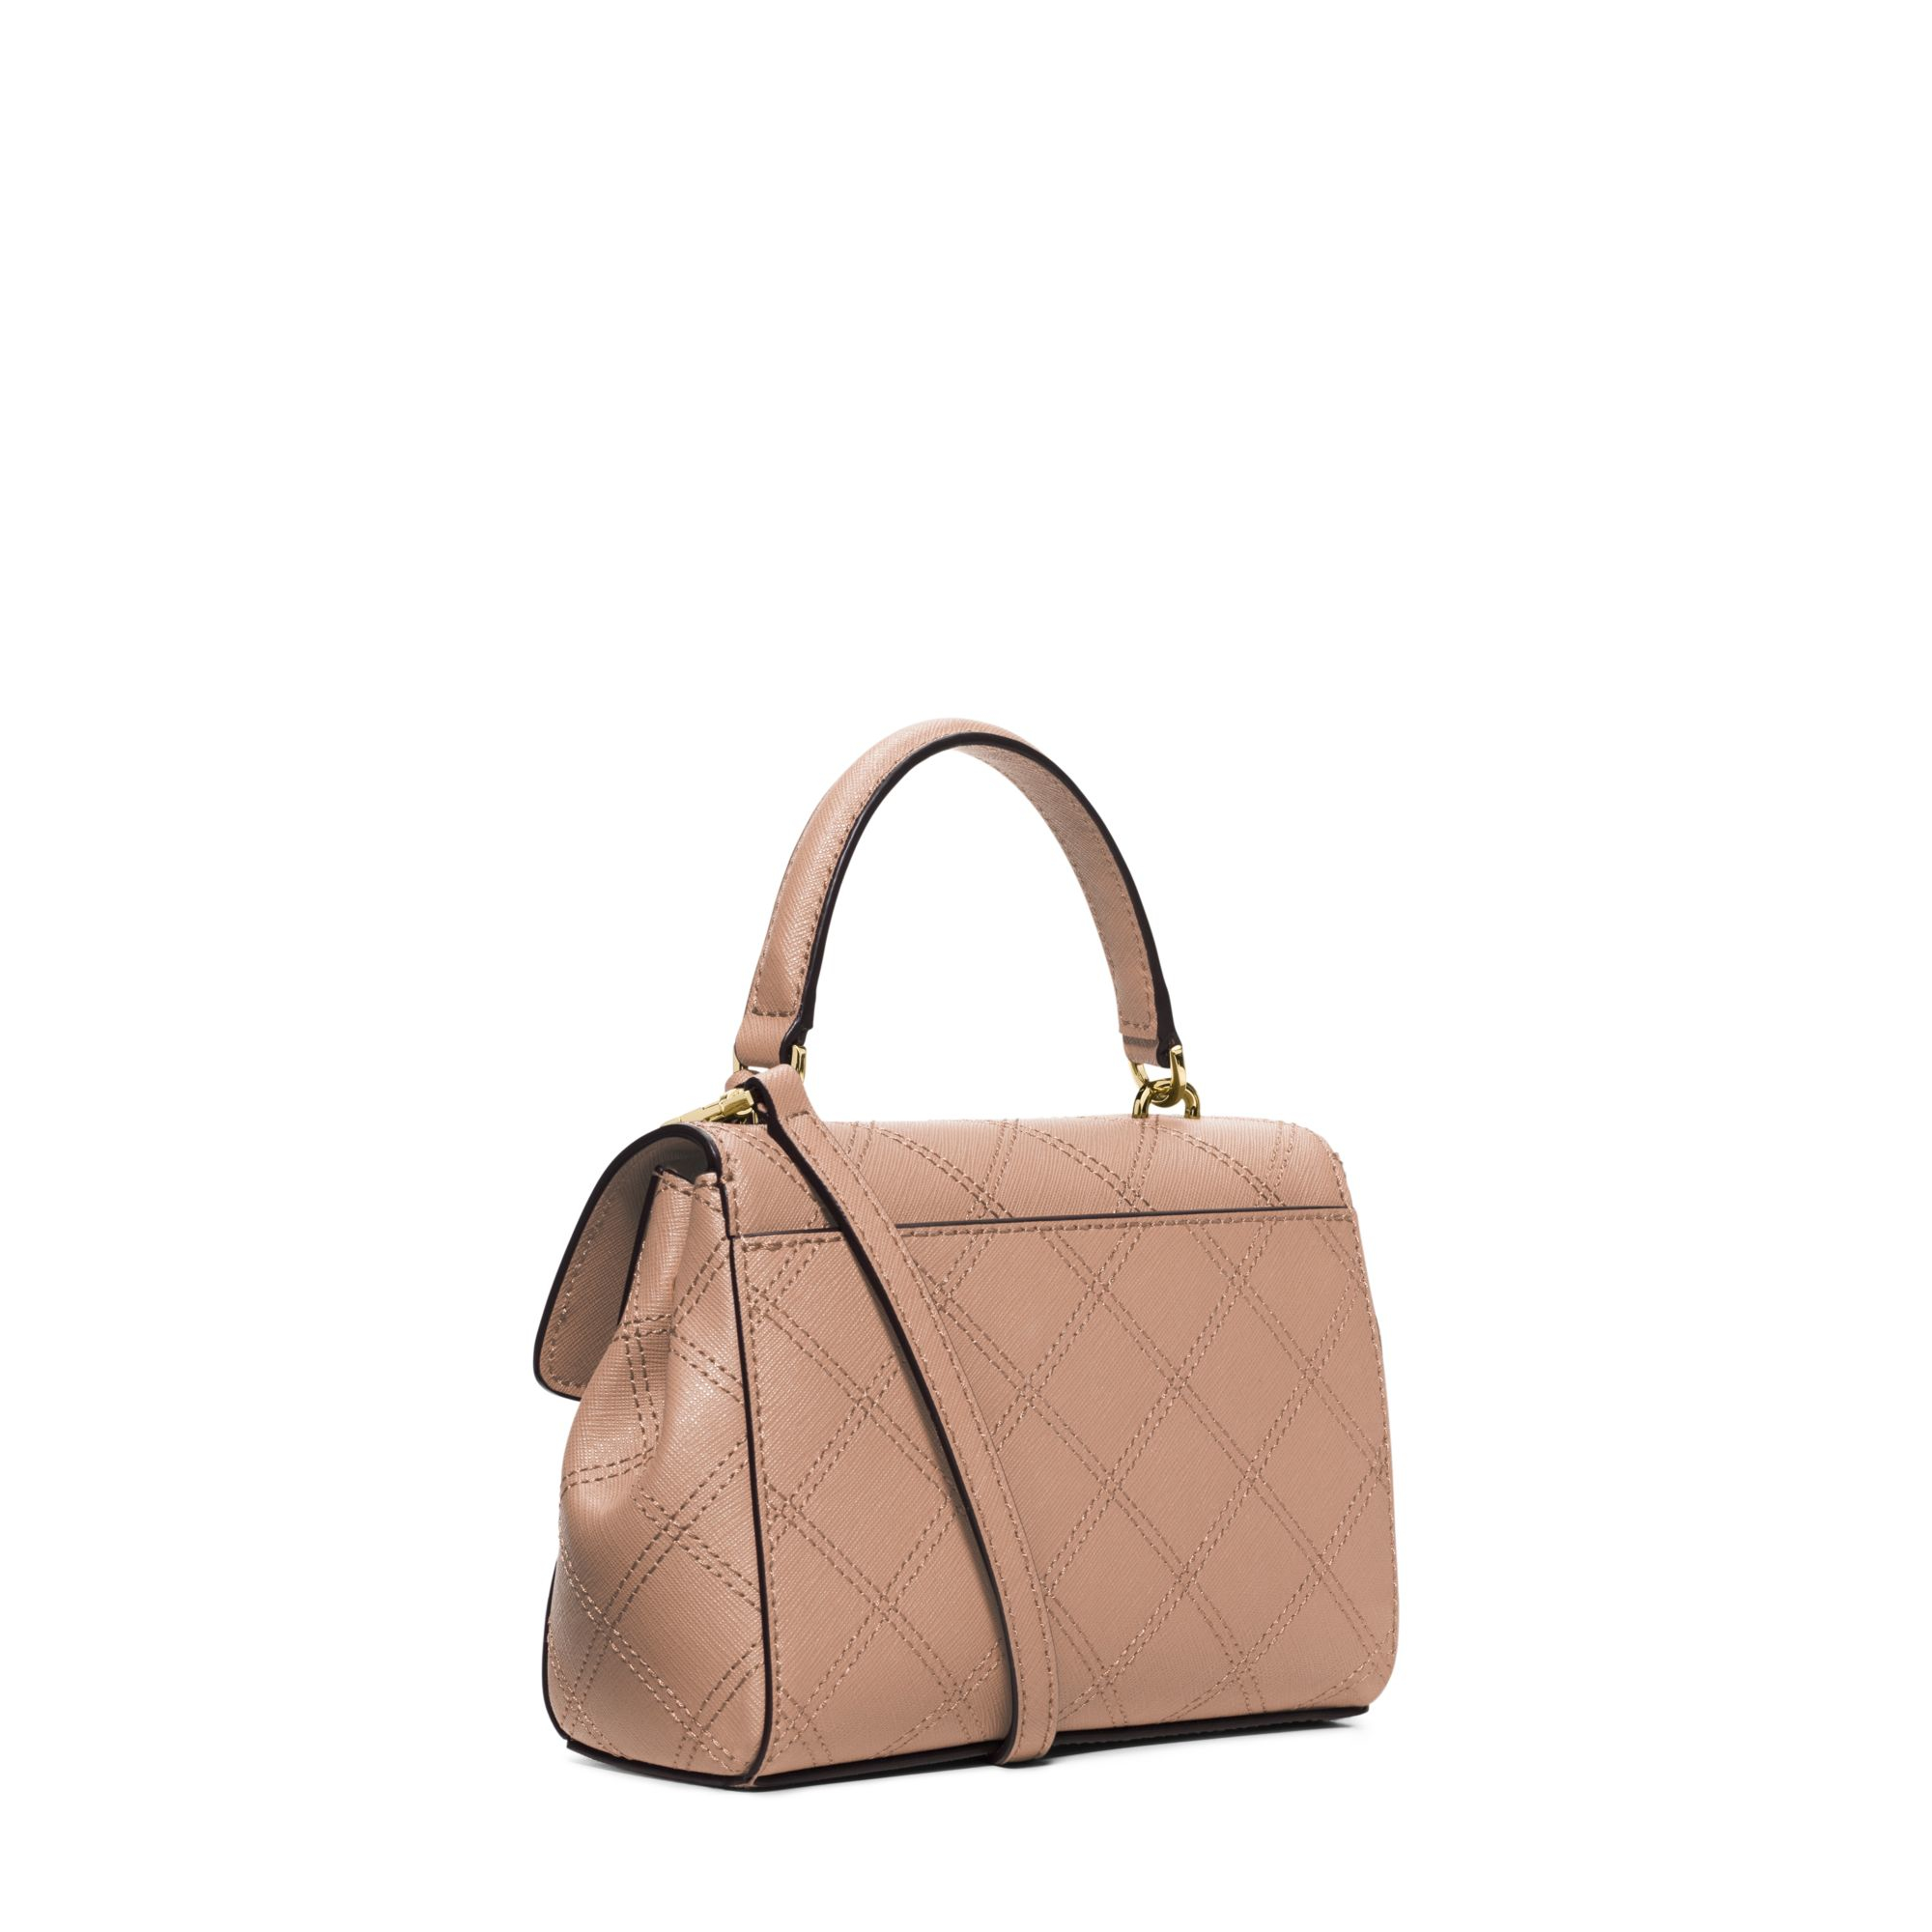 b99e5aca0a40 Lyst - Michael Kors Ava Saffiano-Leather Cross-Body Bag in Brown